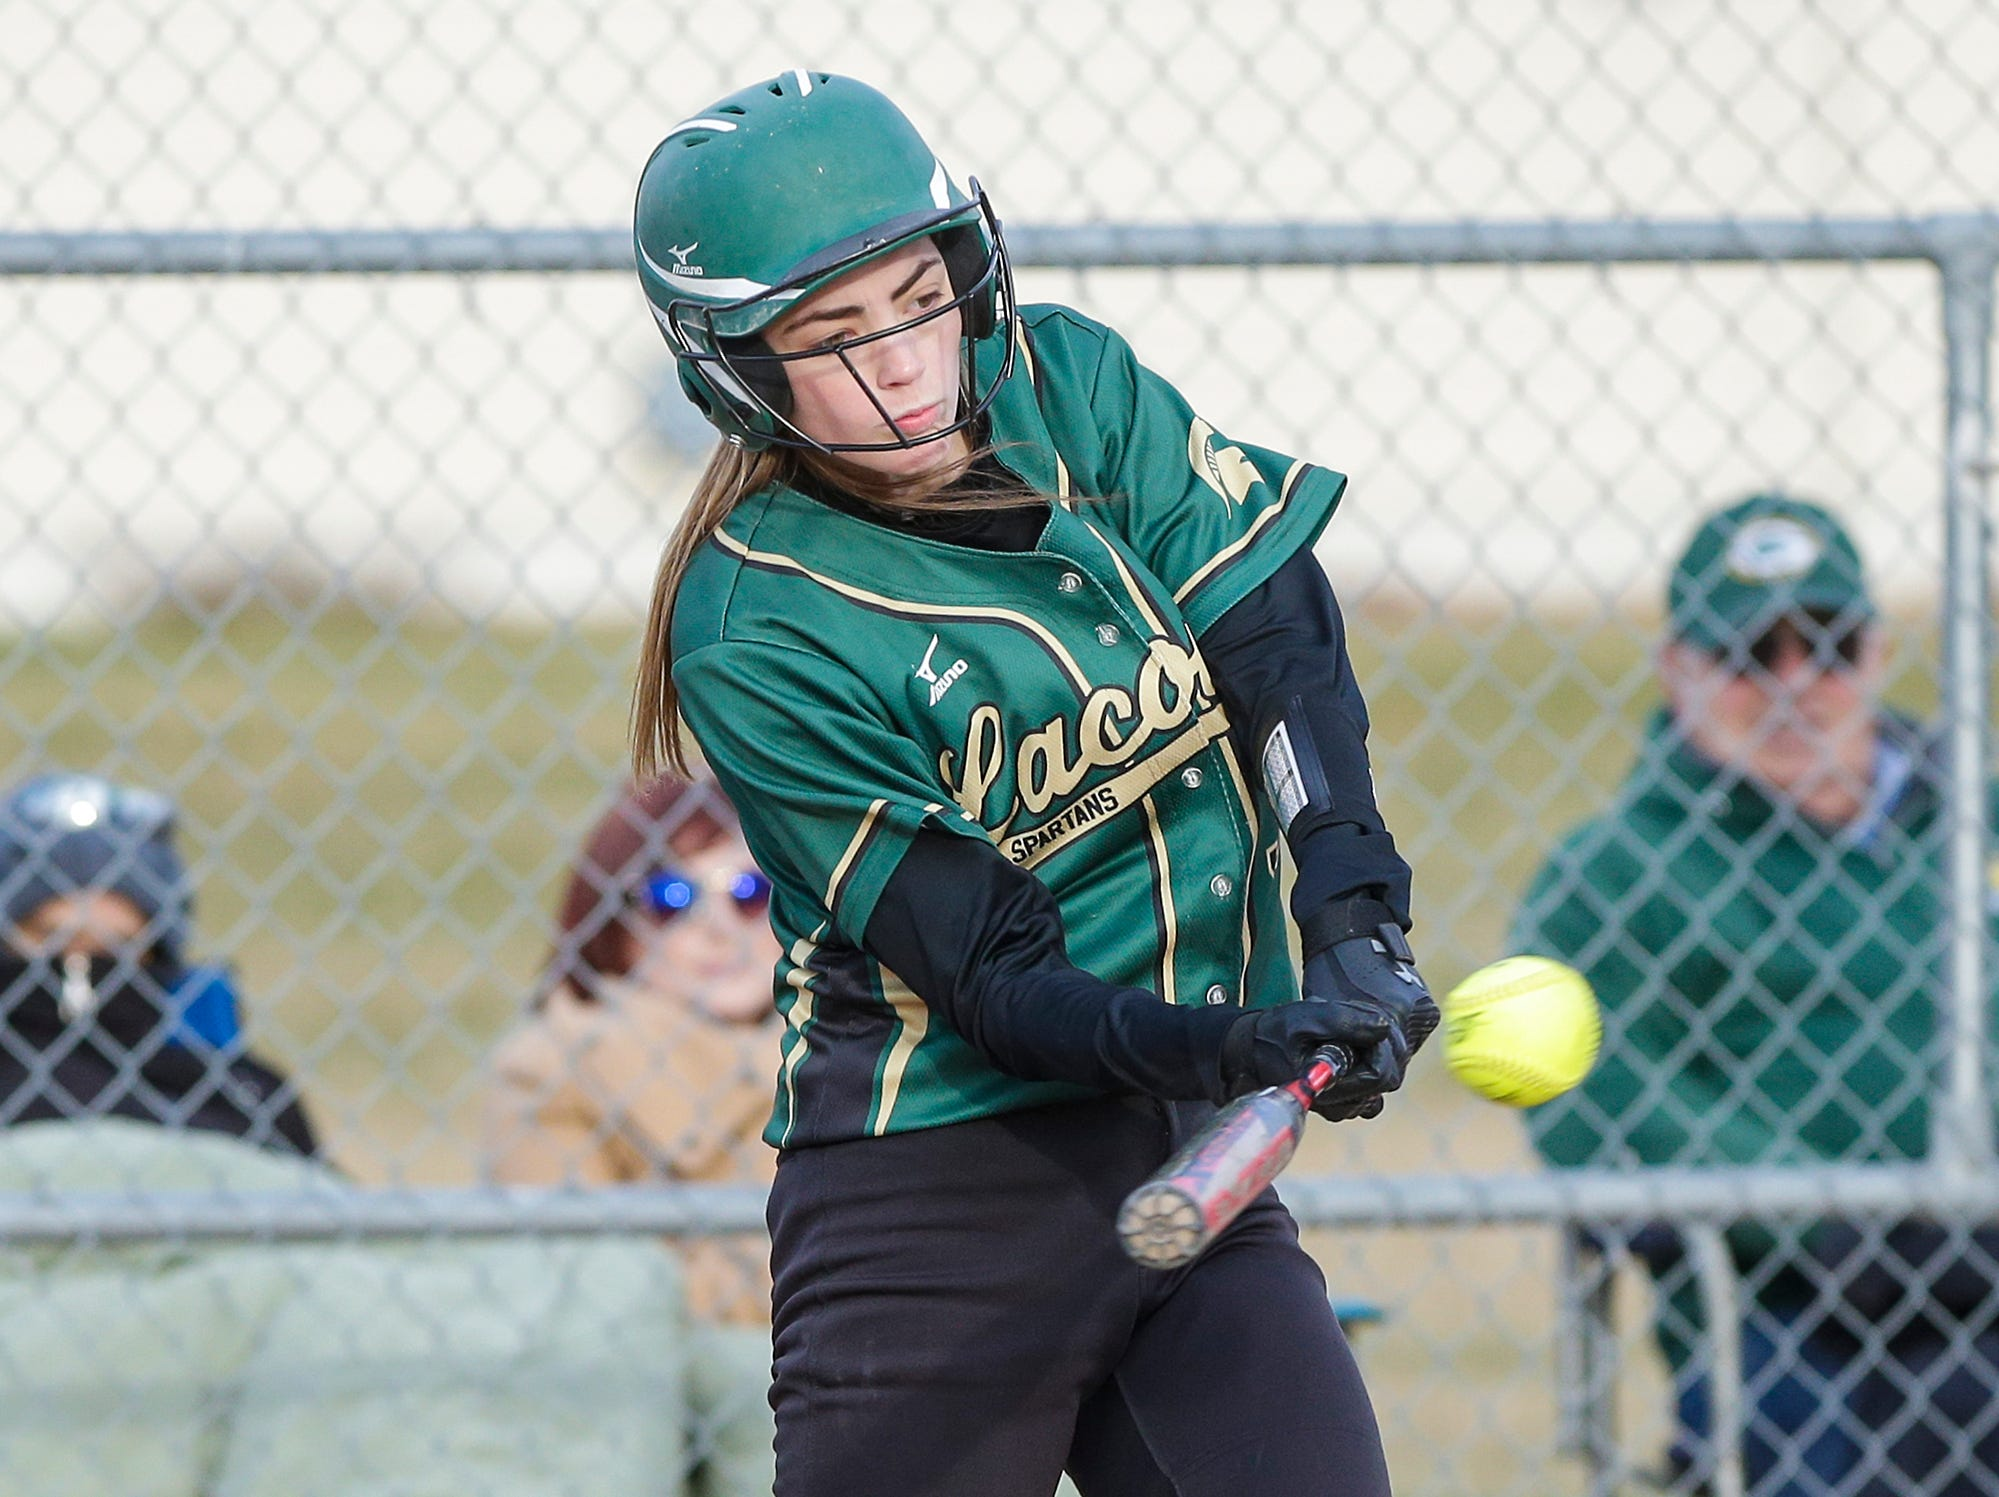 Laconia High School softball's Maci Grade hits a one run single in the fourth inning against Winnebago Lutheran Academy April 9, 2019 during their game in Fond du Lac, Wis. Laconia won the game 25-9. Doug Raflik/USA TODAY NETWORK-Wisconsin